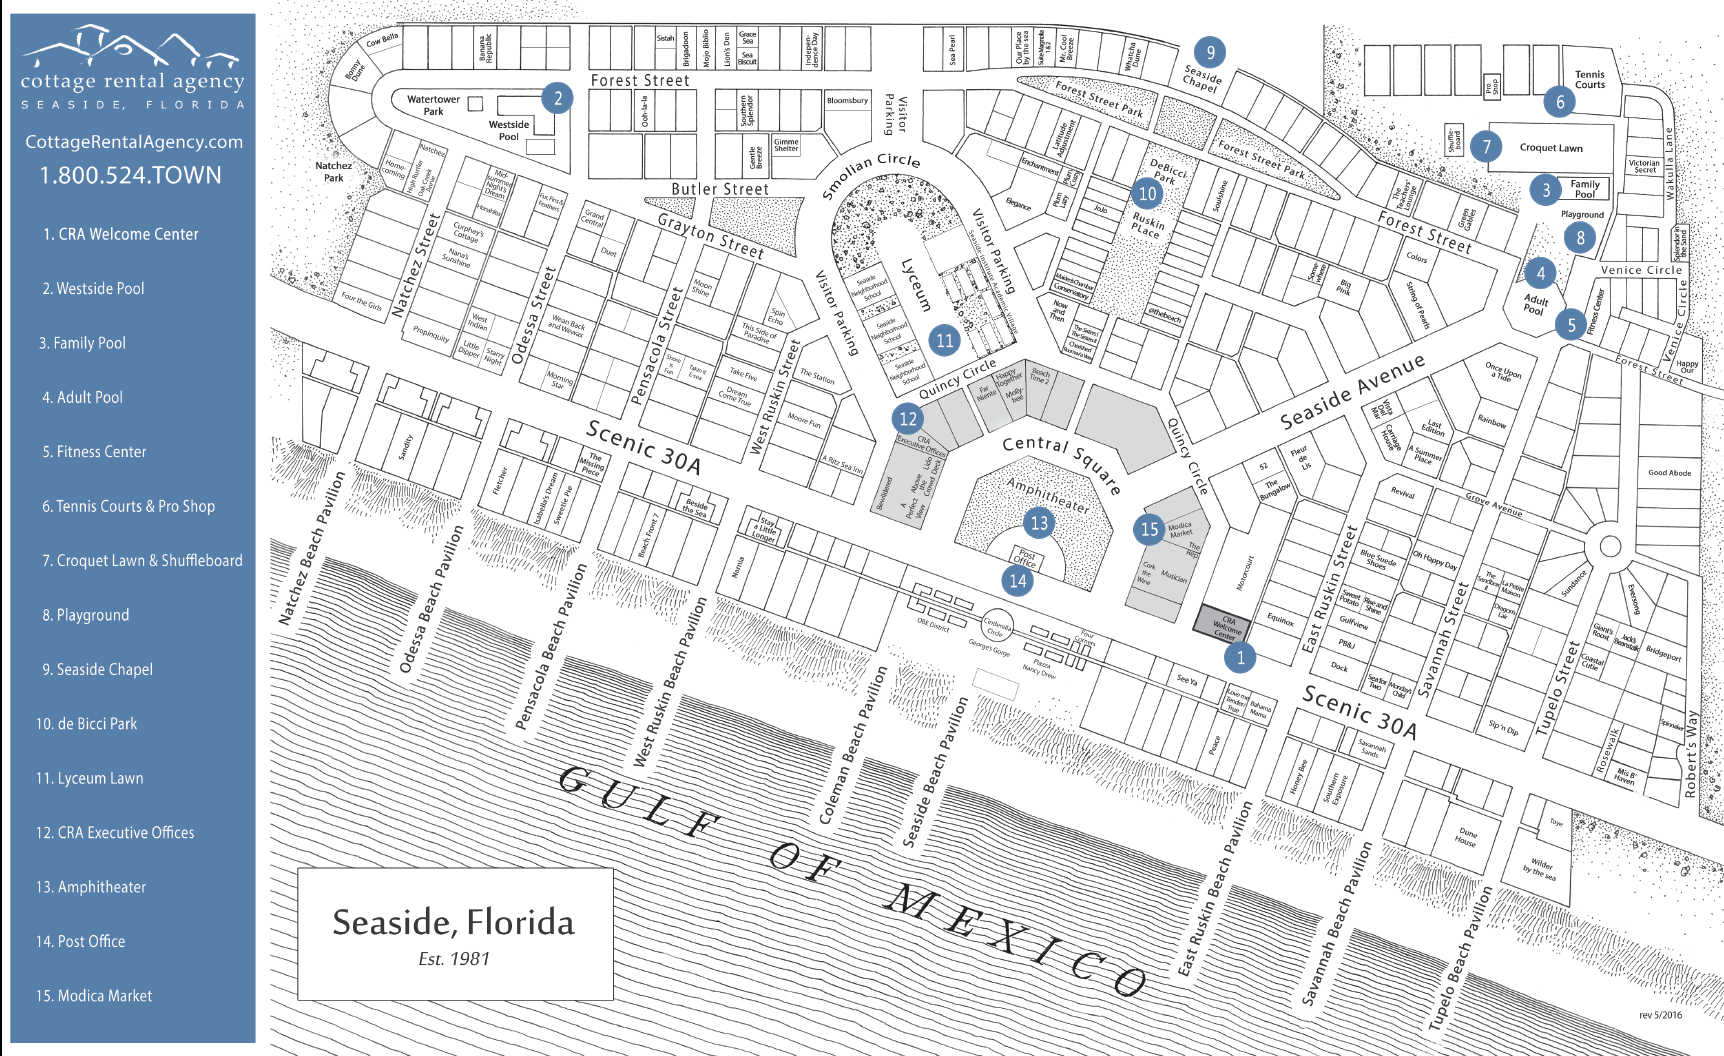 Seaside, Florida And 30A Guest Services – Seaside Florida Vacation - Where Is Seaside Florida On Map